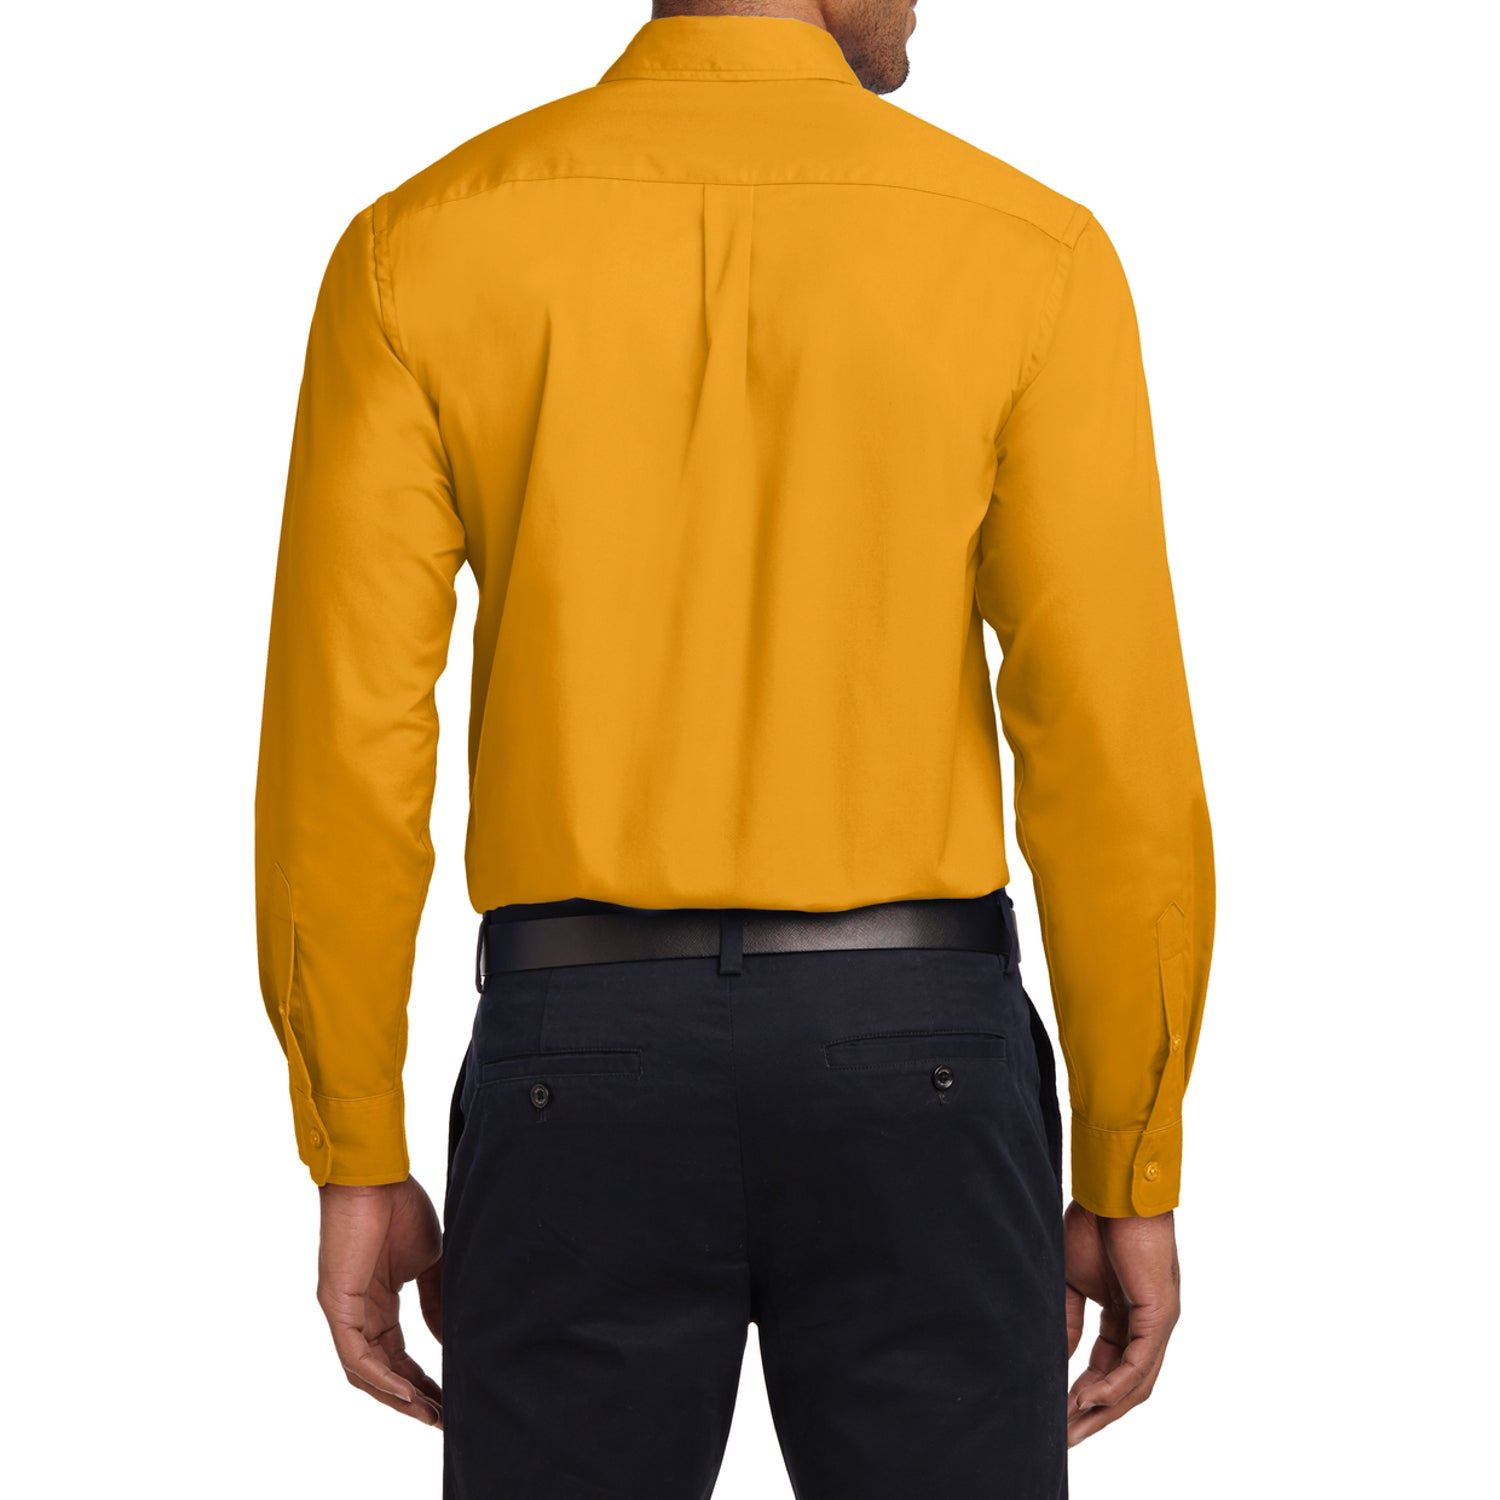 Mafoose Men's Tall Long Sleeve Easy Care Shirt Athletic Gold-Back